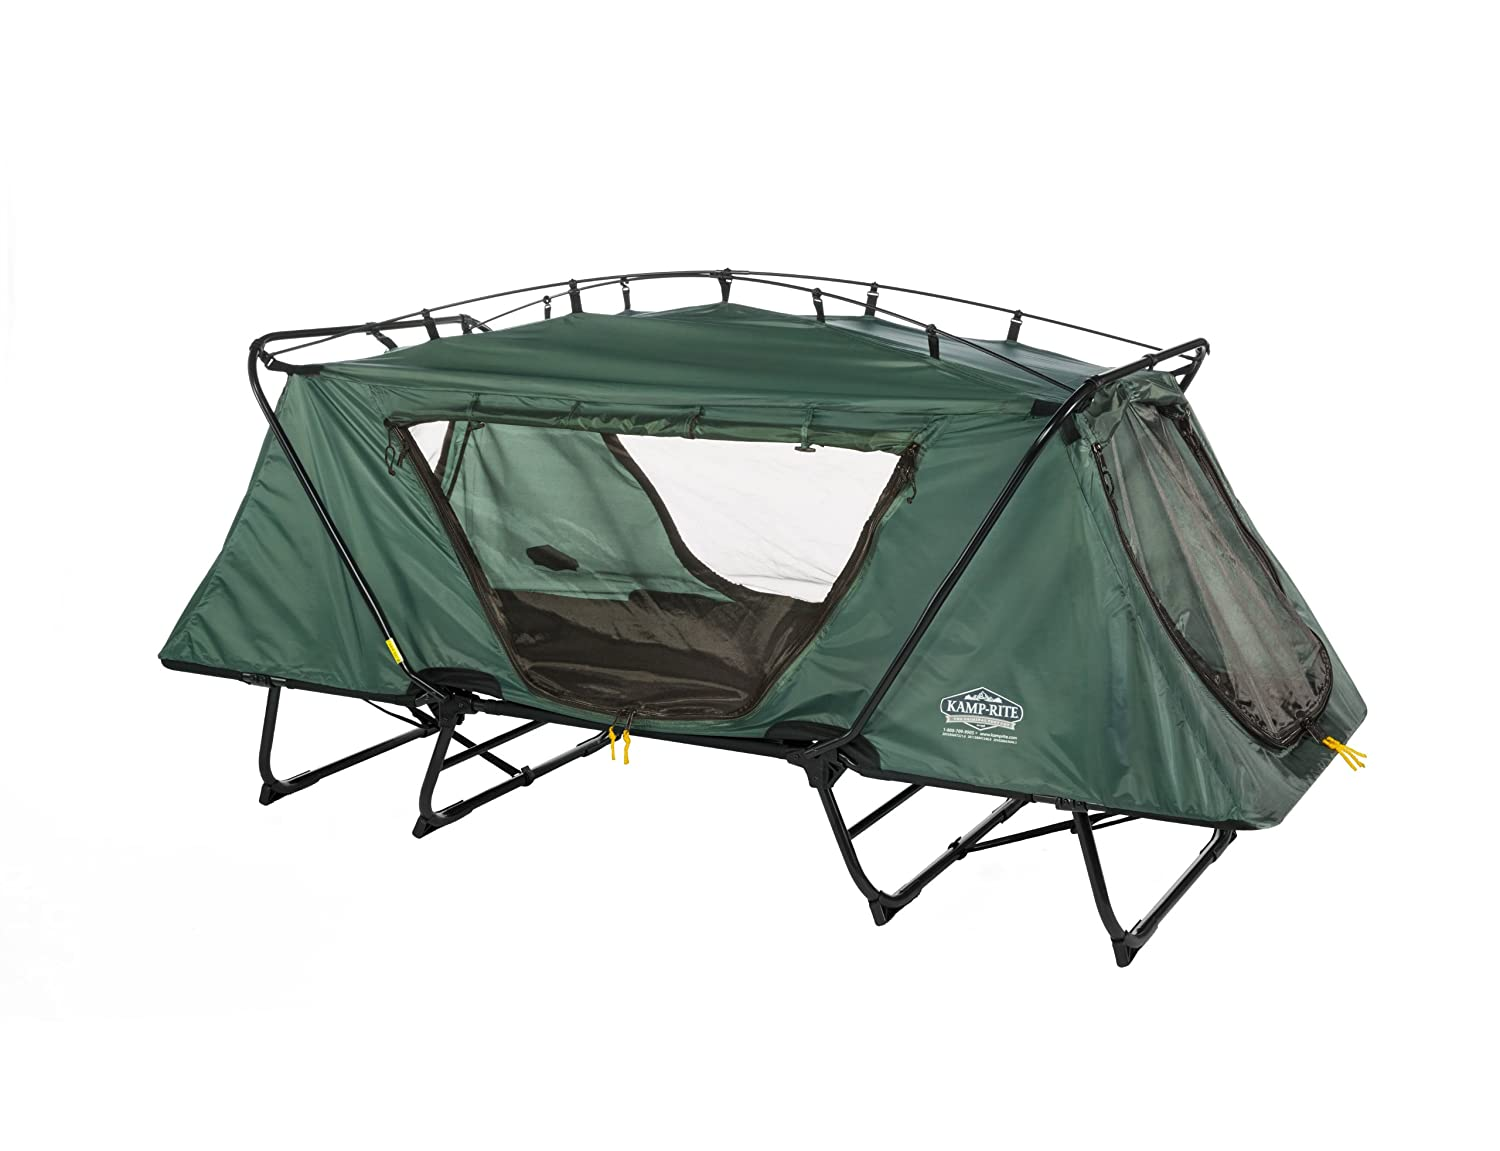 Oversize Tent Travel Cot Camping Gear Hiking Outdoor Sleeping Cot Folding Bed | eBay